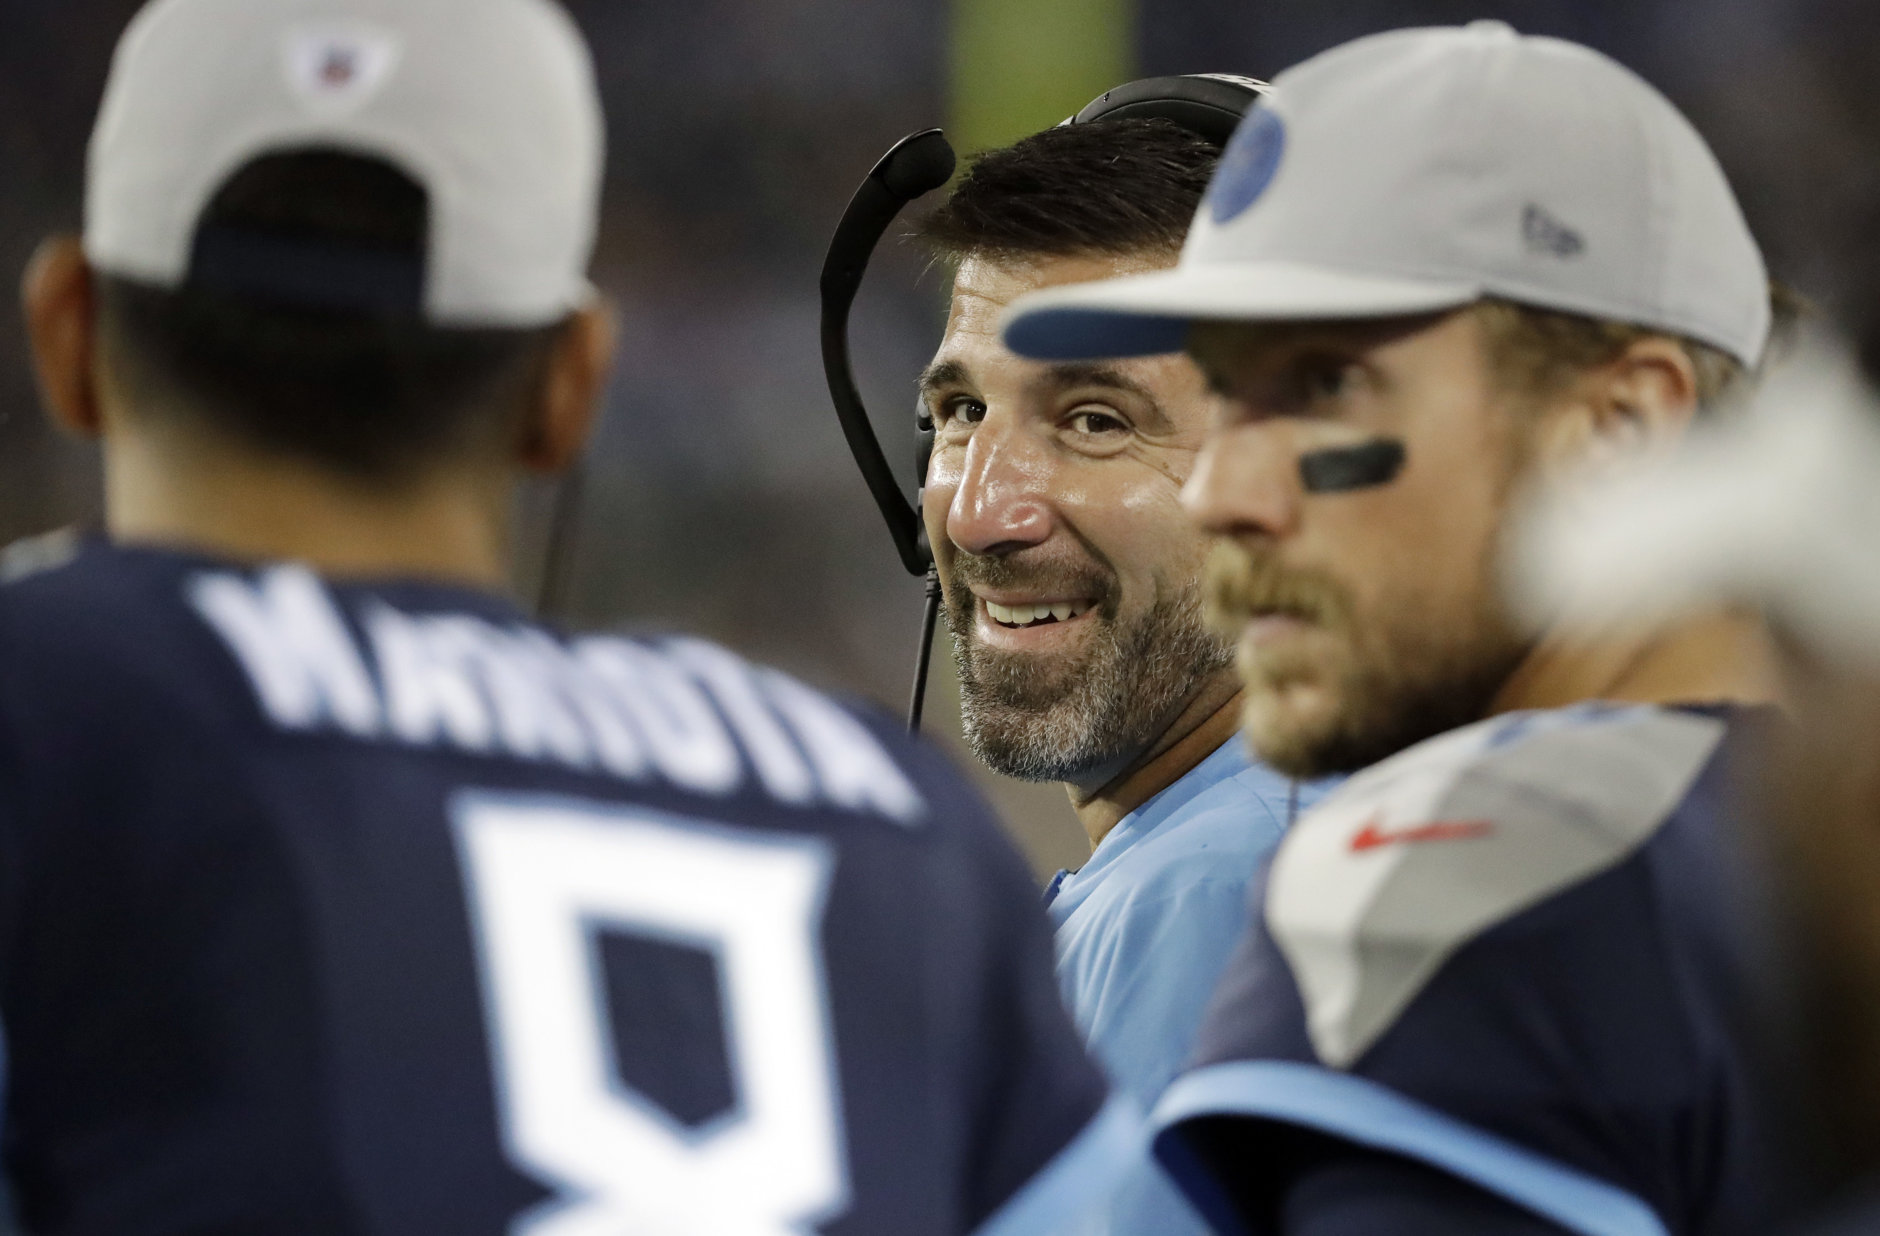 Tennessee Titans head coach Mike Vrabel, center, talks with quarterbacks Marcus Mariota (8) and Blaine Gabbert, right, in the first half of a preseason NFL football game against the Minnesota Vikings Thursday, Aug. 30, 2018, in Nashville, Tenn. (AP Photo/James Kenney)